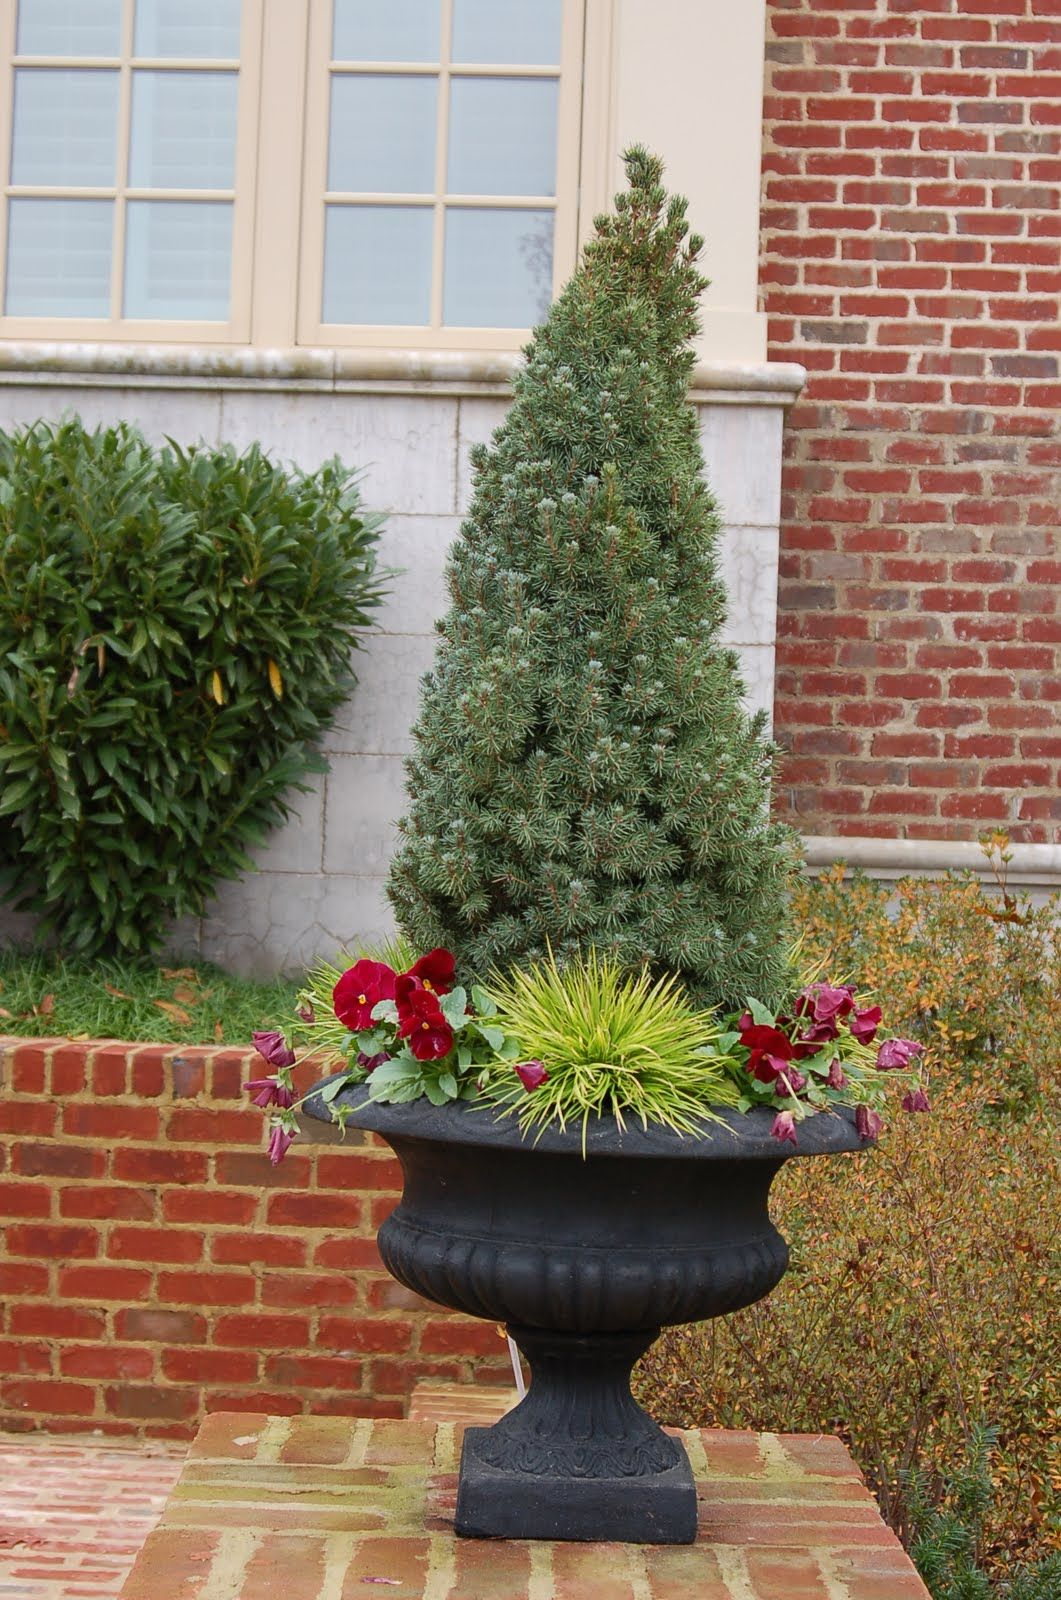 dwarf alberta spruce in container front portch. Black Bedroom Furniture Sets. Home Design Ideas